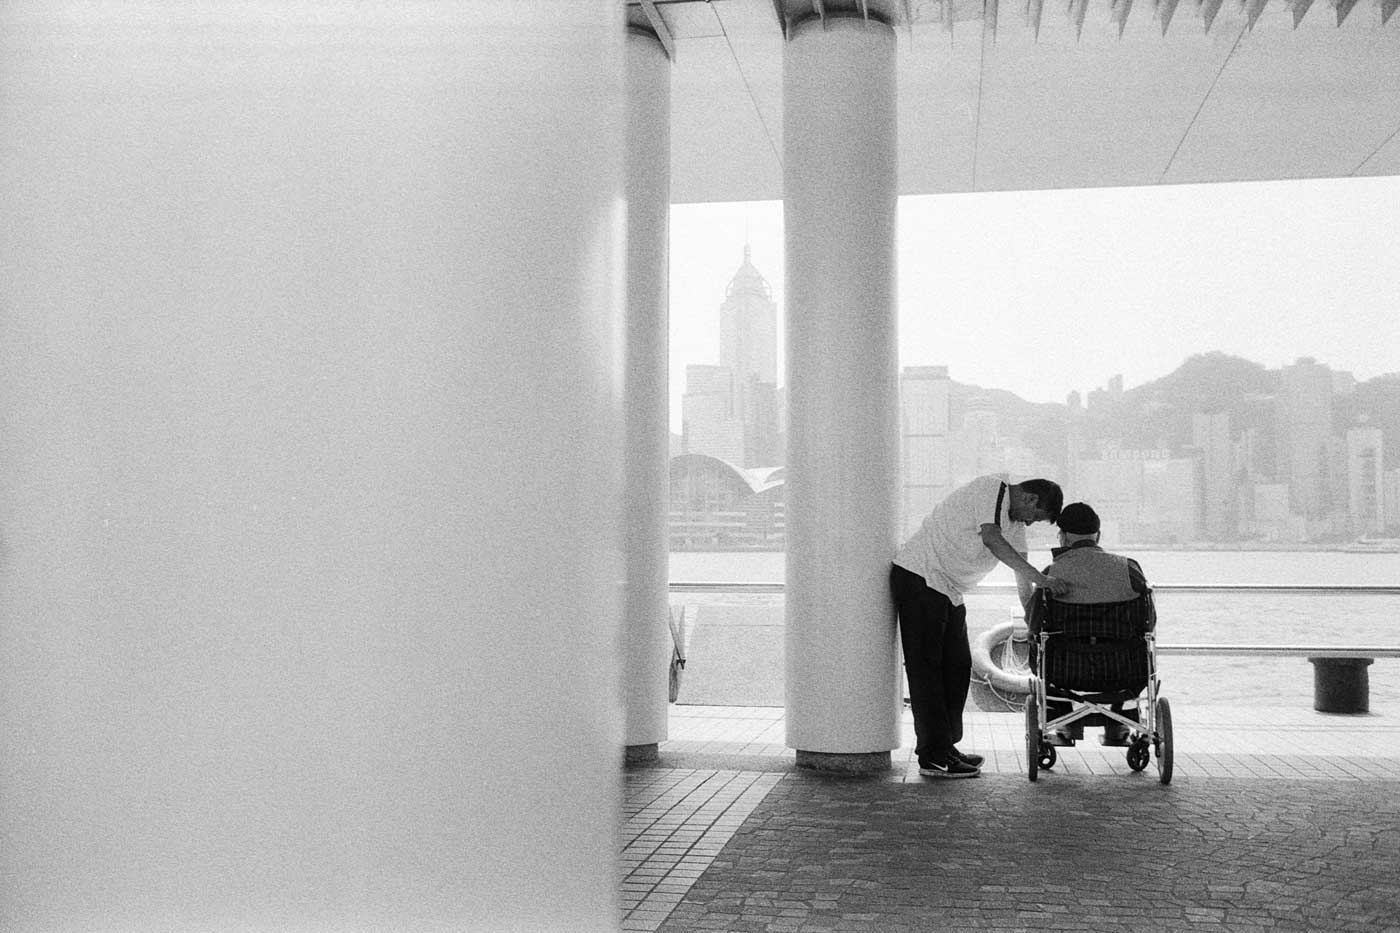 Leica-summicron-35mm-f2-8element-8-element-v1-version1-lens-review-blog-sharing-thoughts-compare-7element-gear-how-performance-Rodinal-kodak-Double-x-father-on-wheelchair-son-take-care-hk-hong-kong